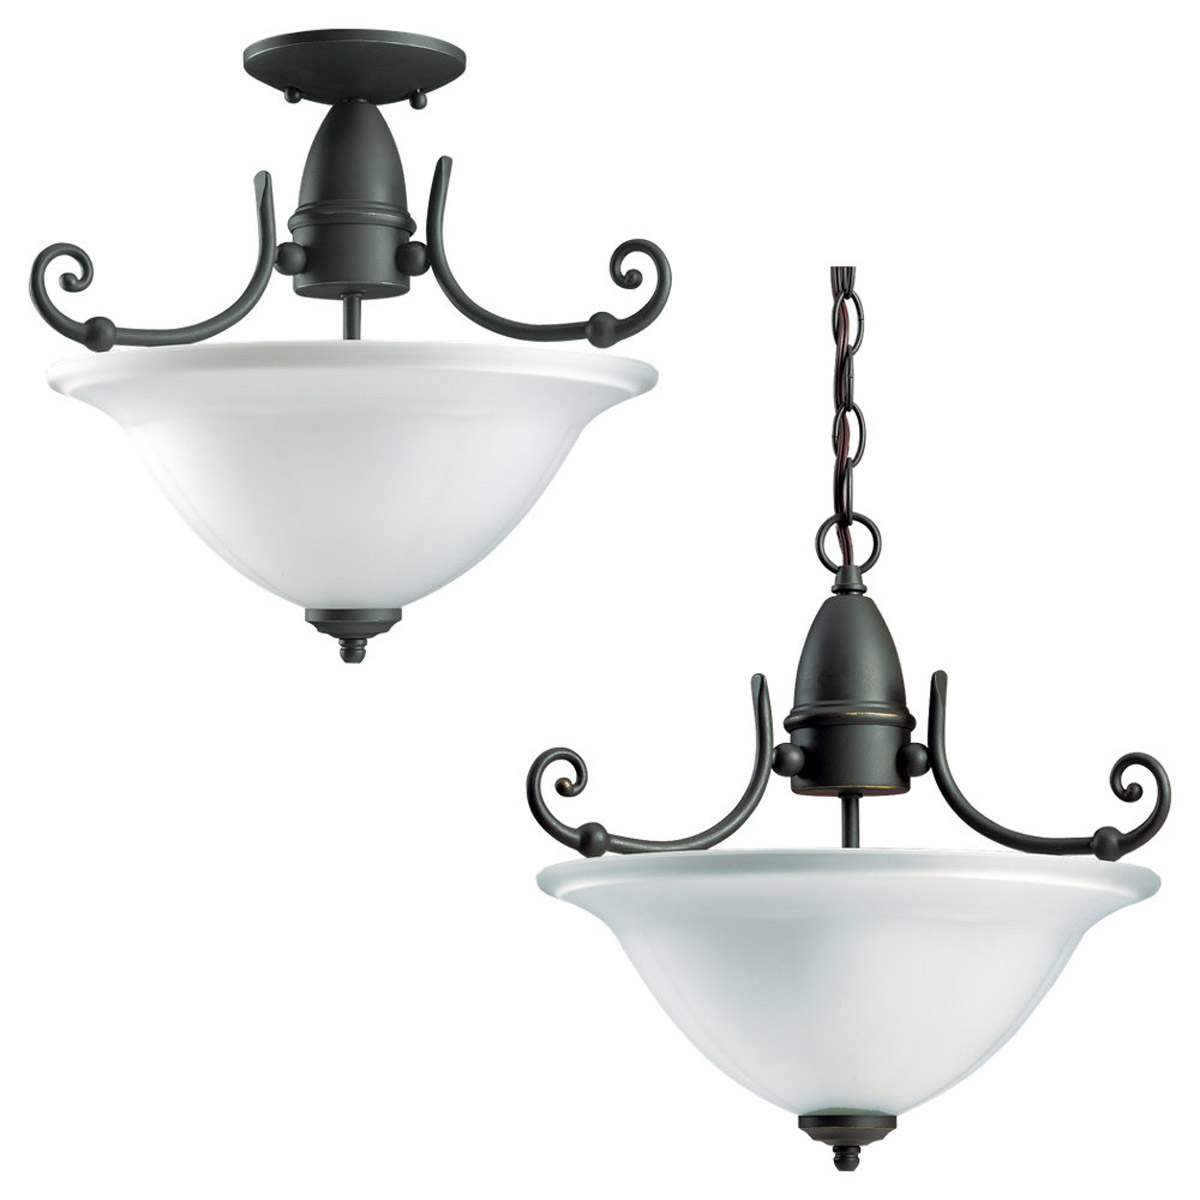 Sea Gull Lighting Canterbury 1 Light Convertible Semi-Flush in Antique Bronze 59050BLE-71 photo